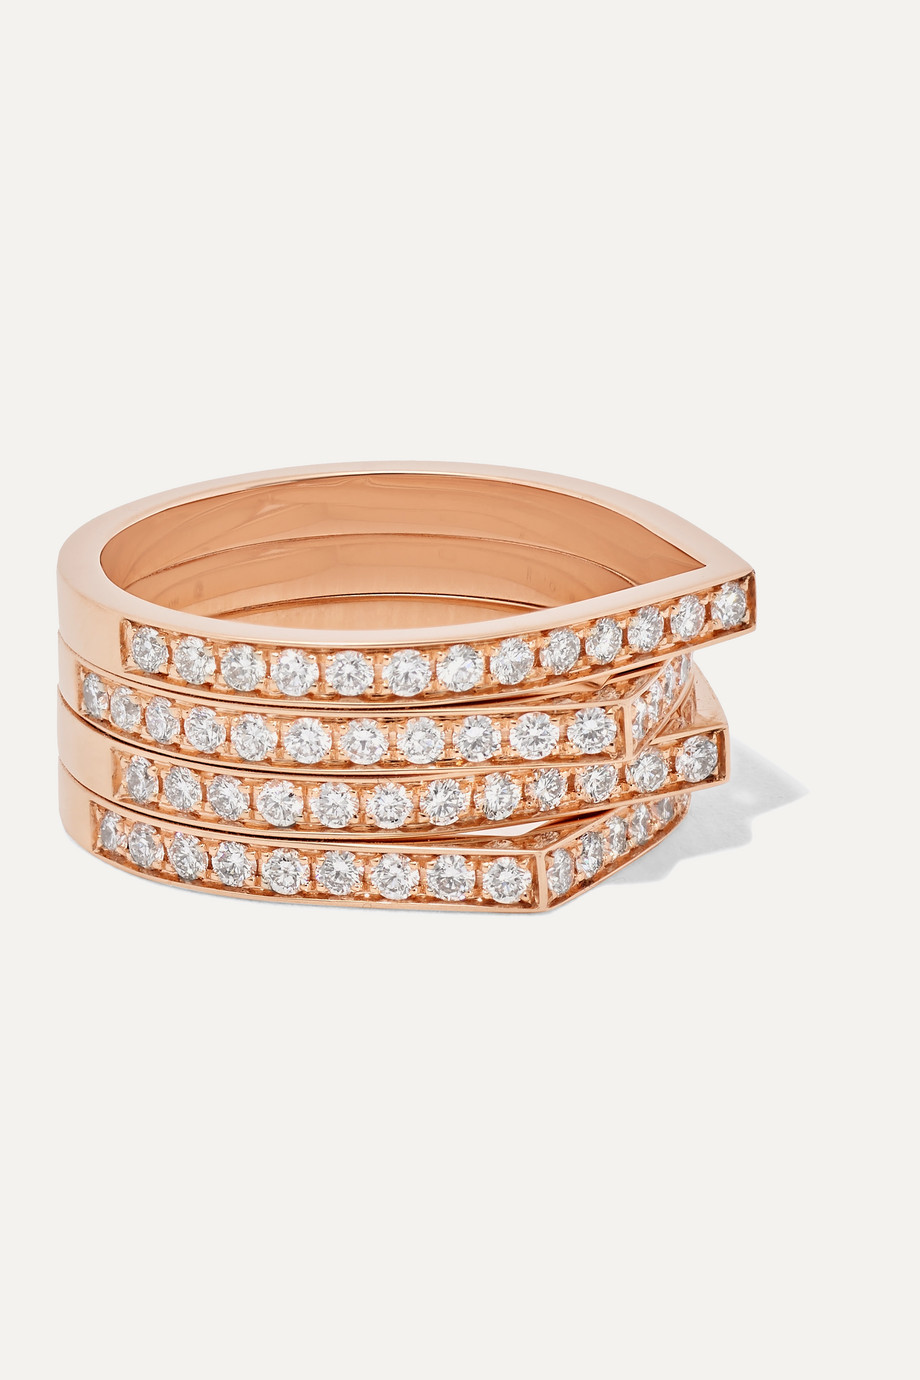 Repossi Antifer Ring aus 18 Karat Roségold mit Diamanten